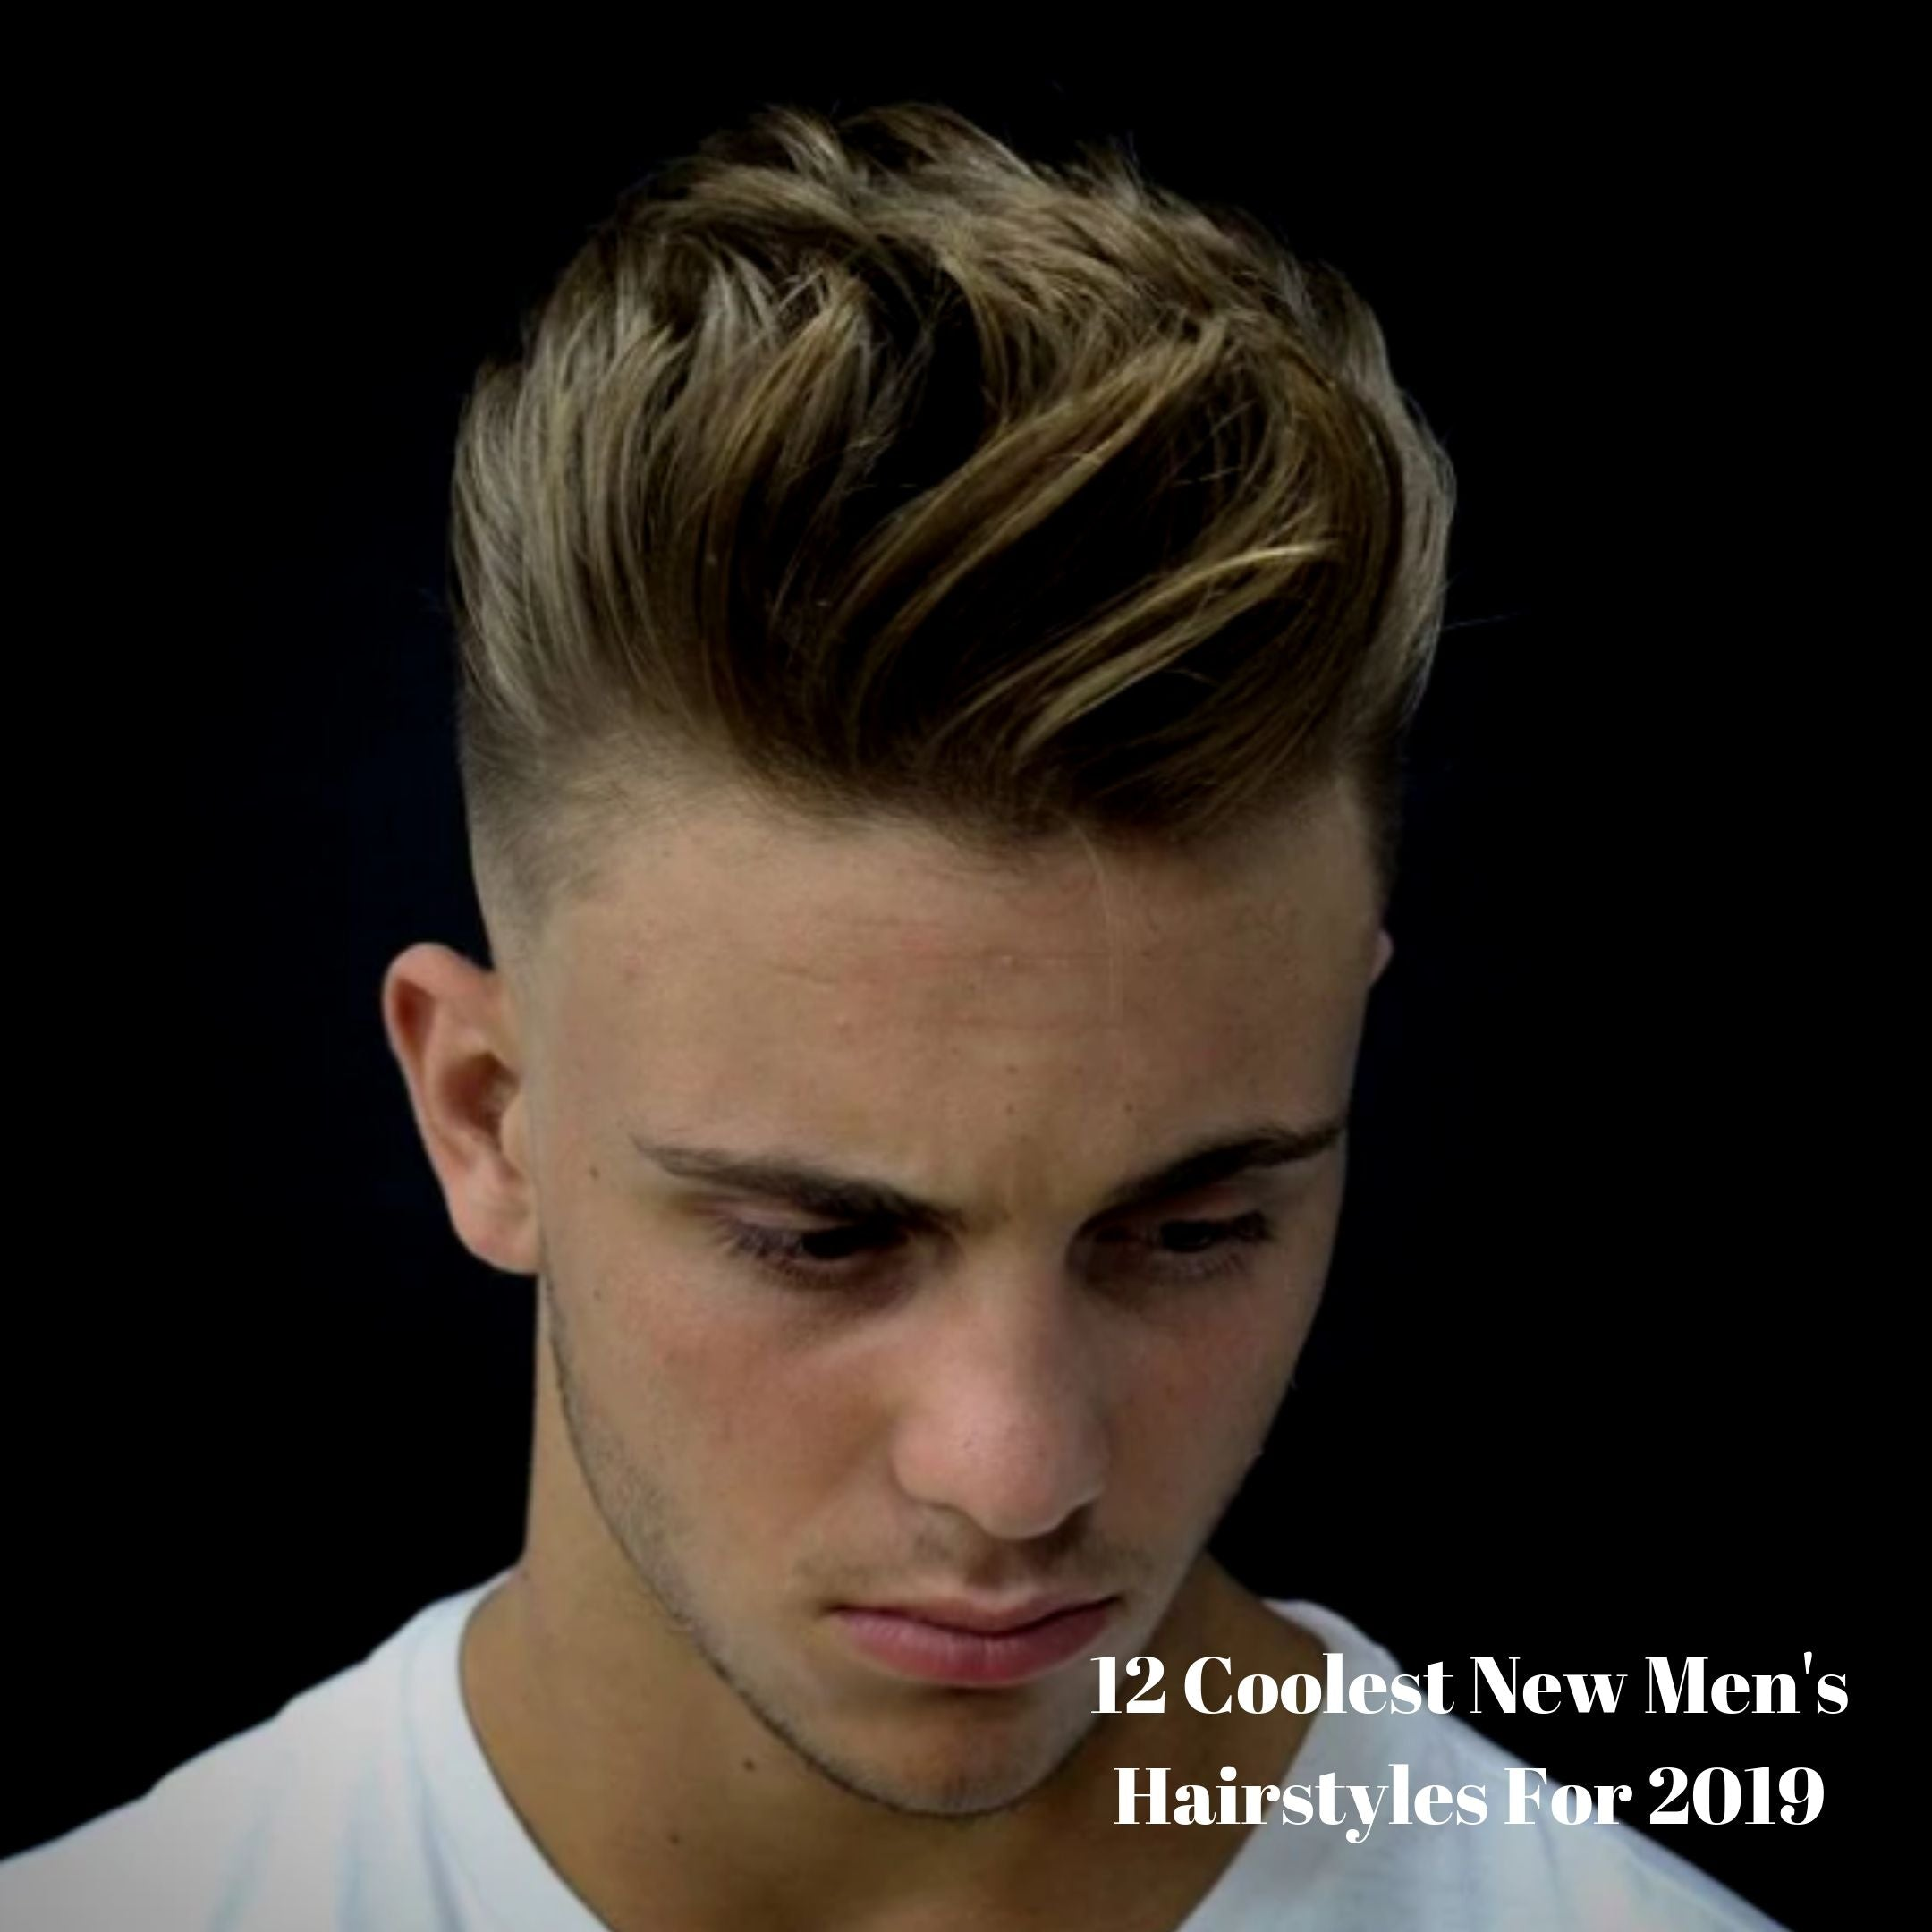 12 Coolest New Men\'s Hairstyles For 2019 – LIFESTYLE BY PS